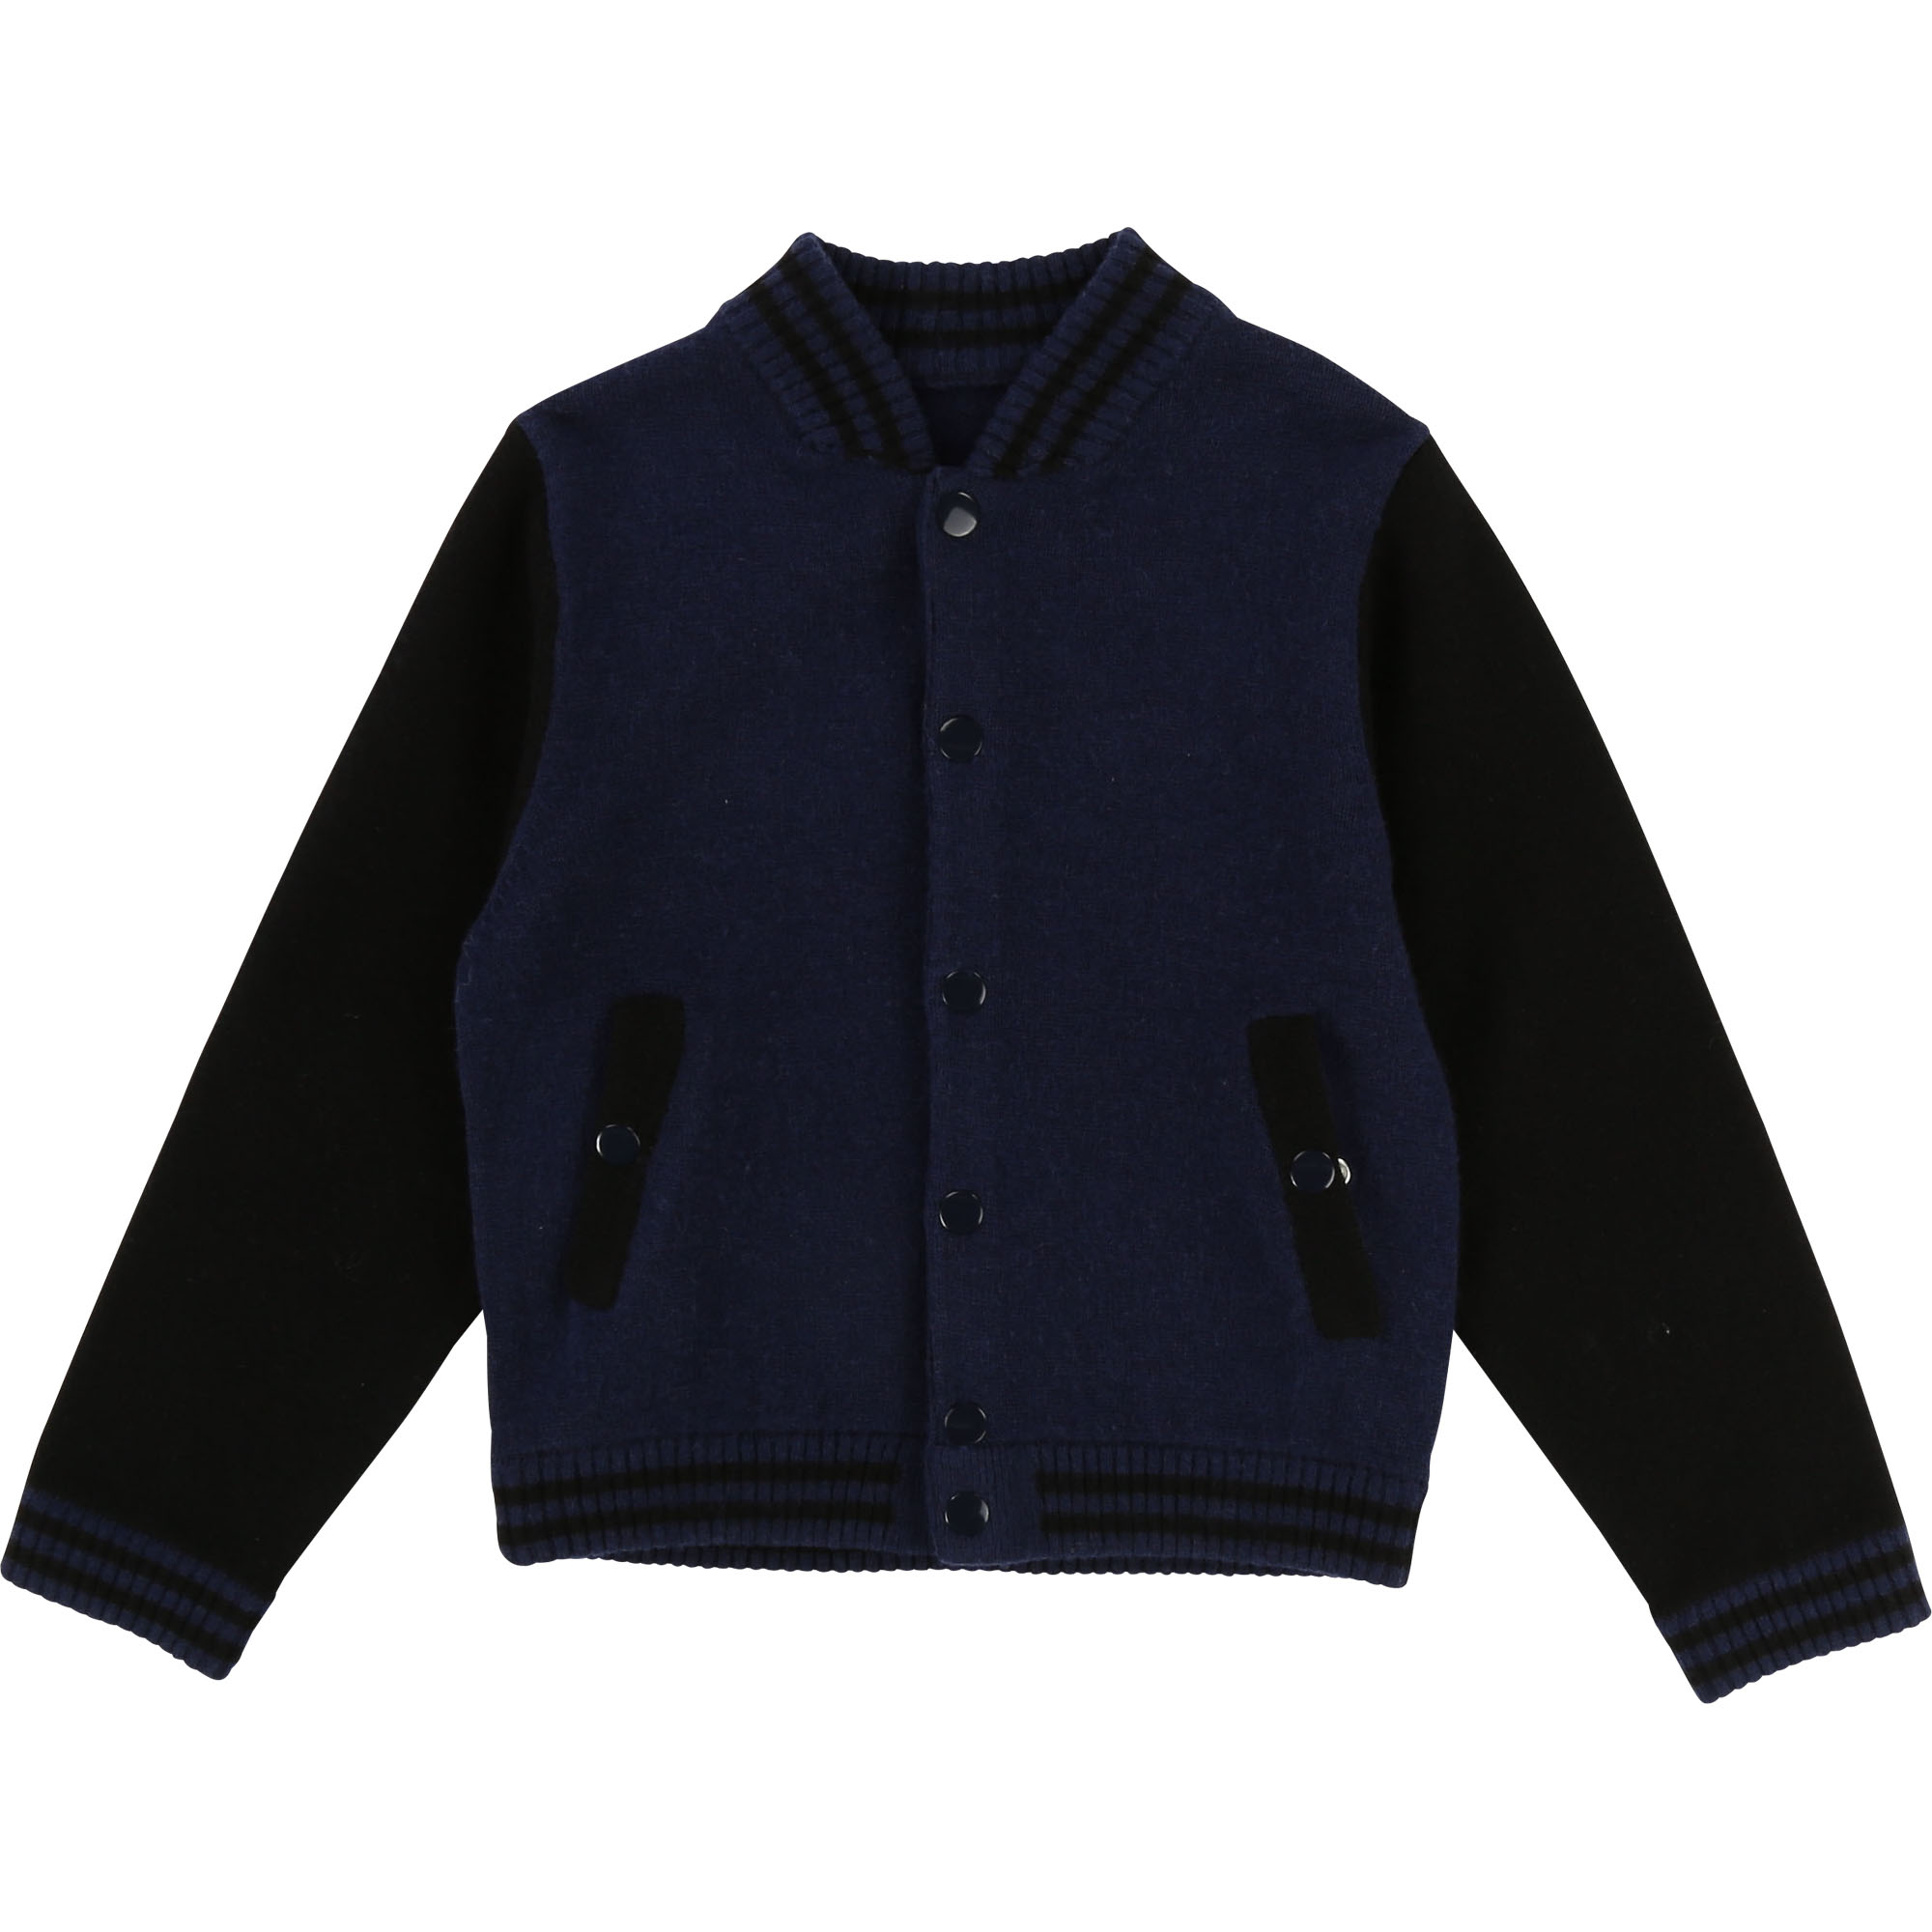 Two-tone knit cardigan THE MARC JACOBS for BOY